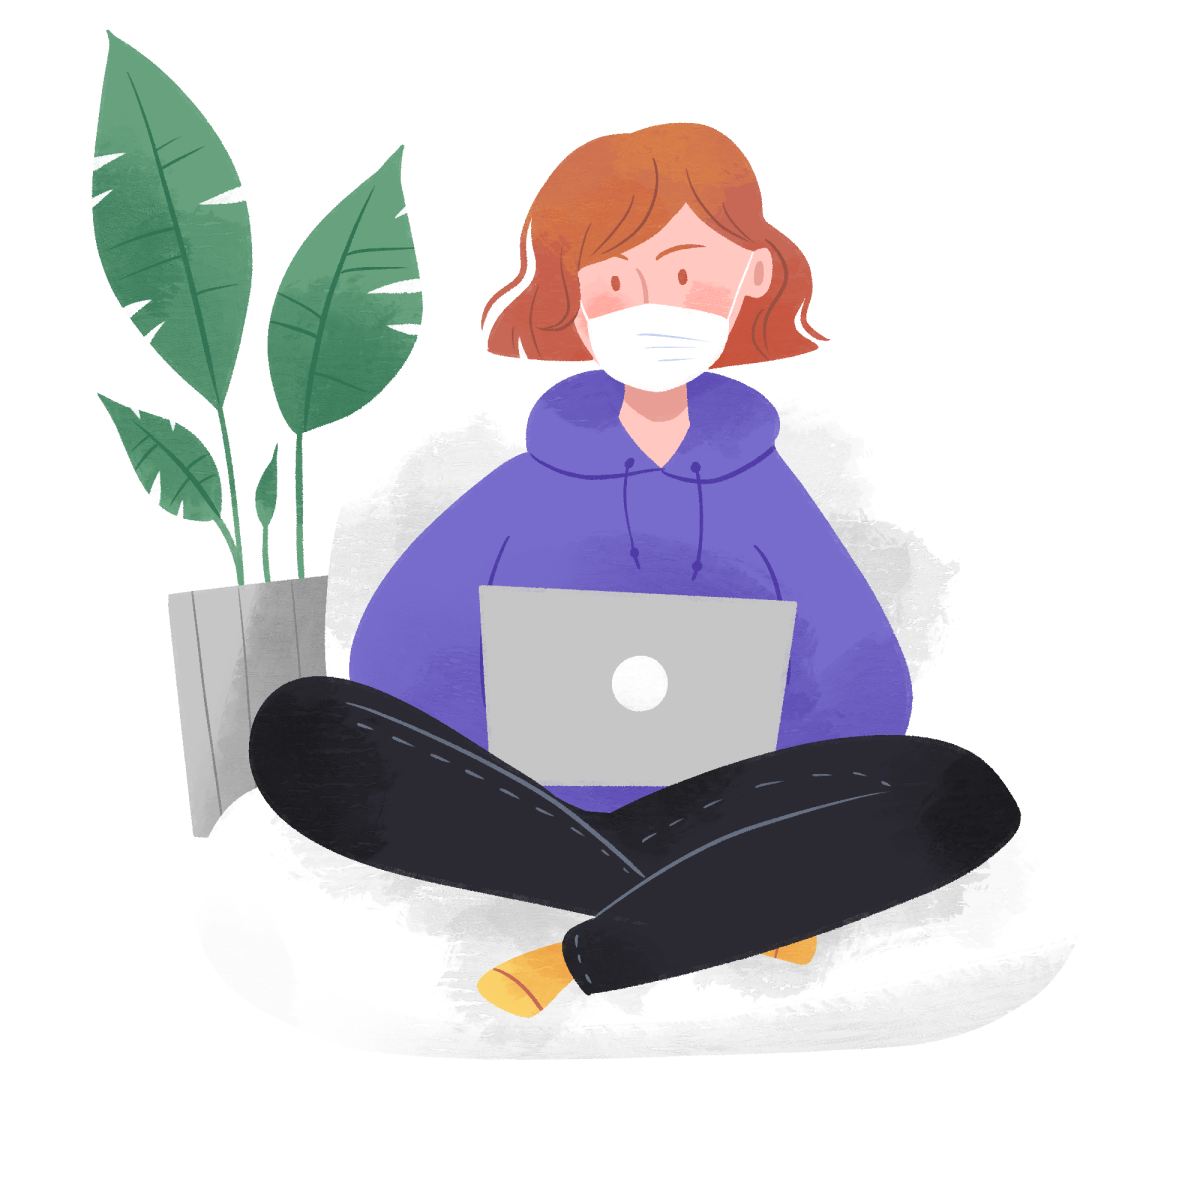 Working at Home - How to Keep Being Productive